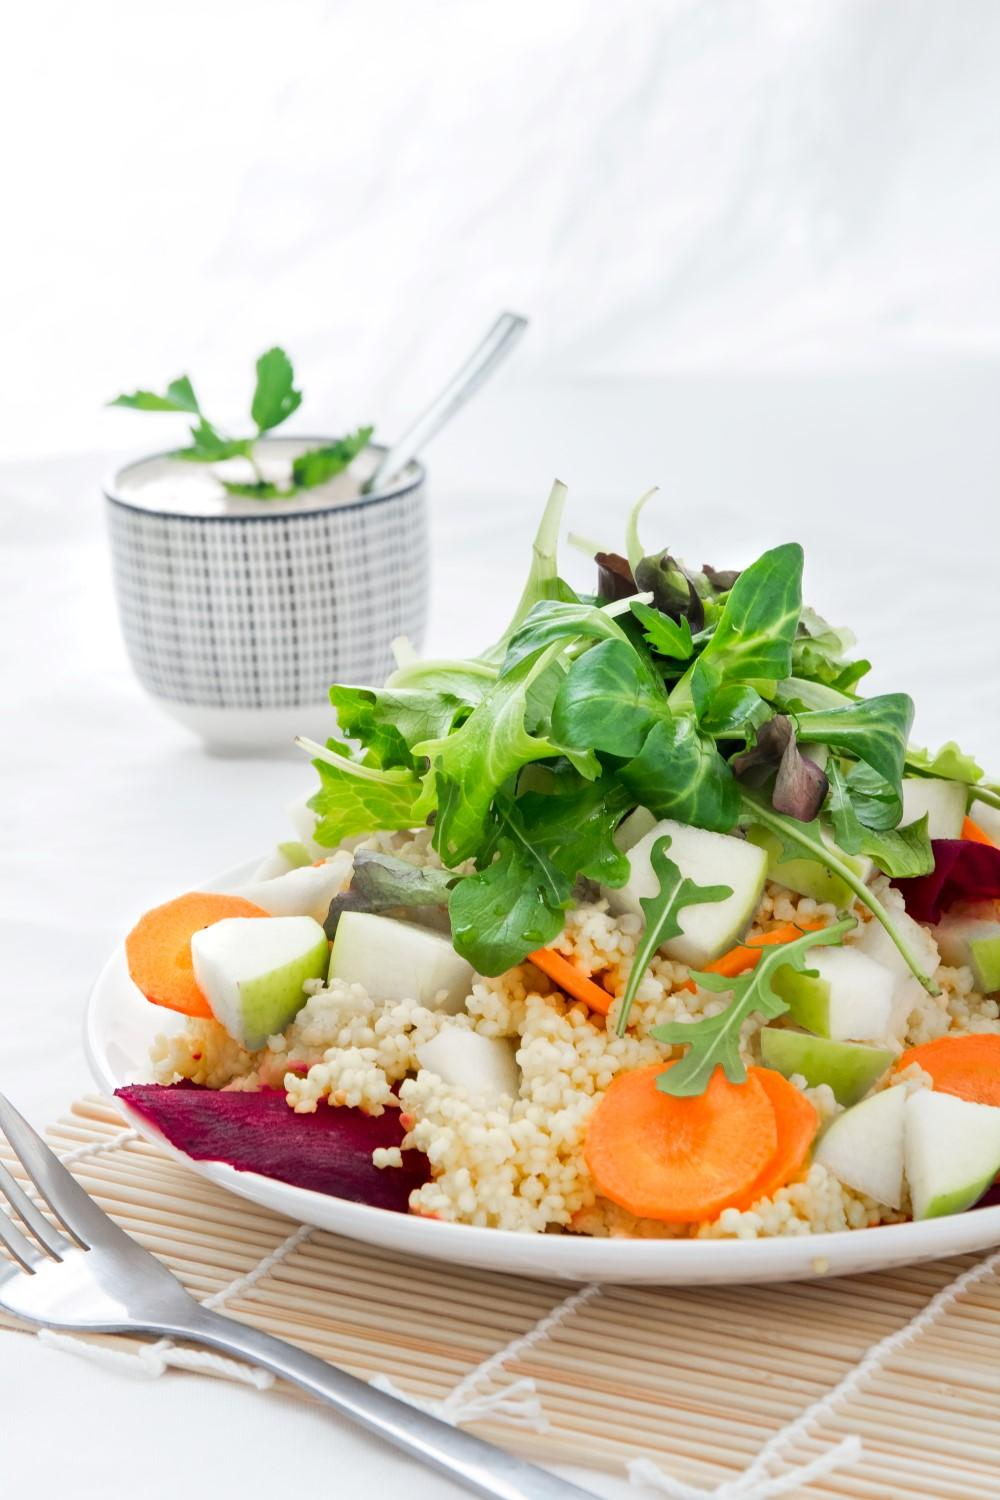 Use Your Noodles - Millet and Carrot Salad with Creamy Almond Dressing